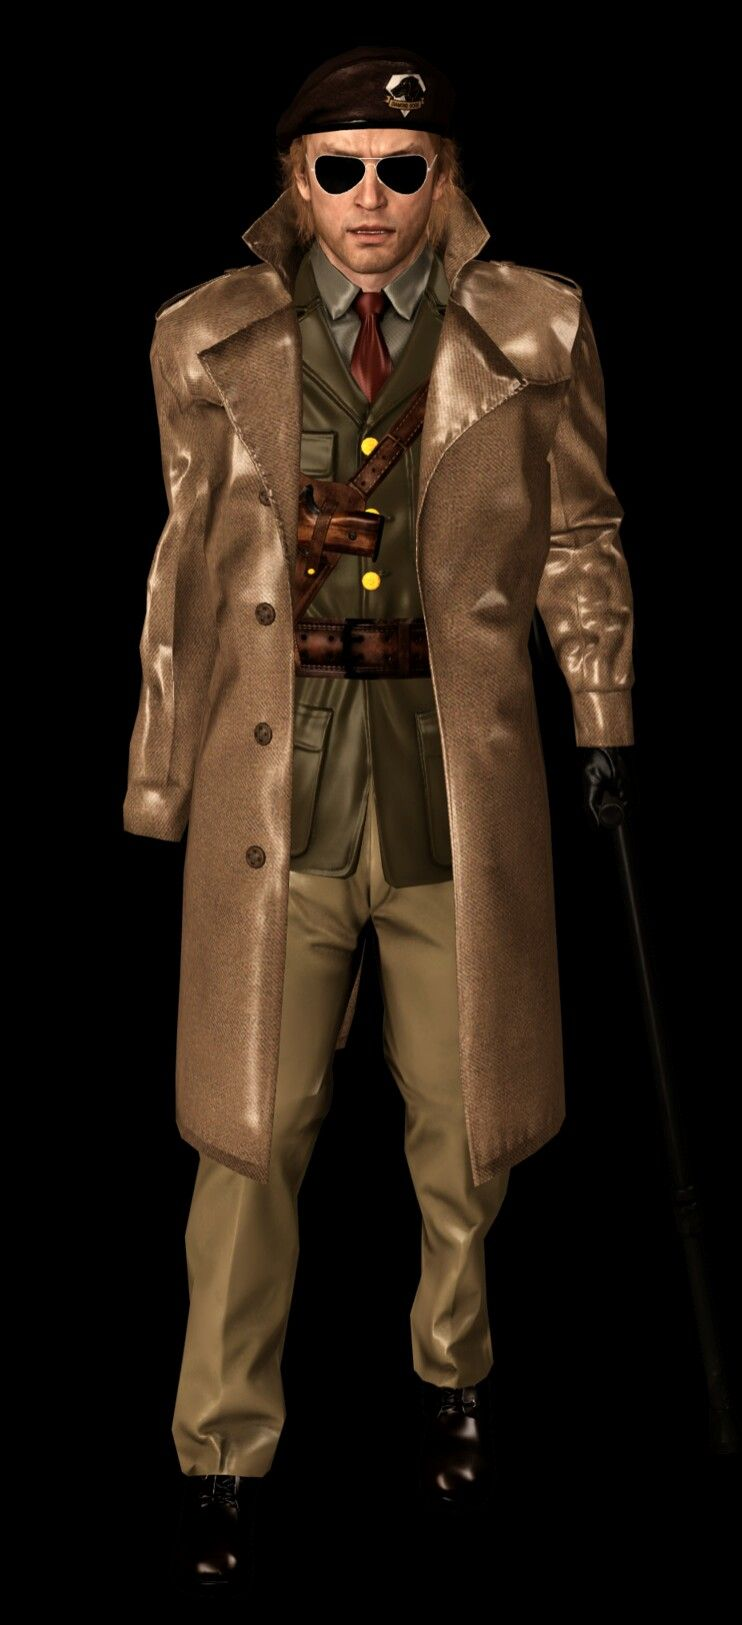 Pin On Metal Gear Solid It's where your interests connect you kazuhira miller (カズヒラ・ミラー kazuhira mirā), also known as mcdonell benedict miller and master miller, was the subcommander of both the. pin on metal gear solid